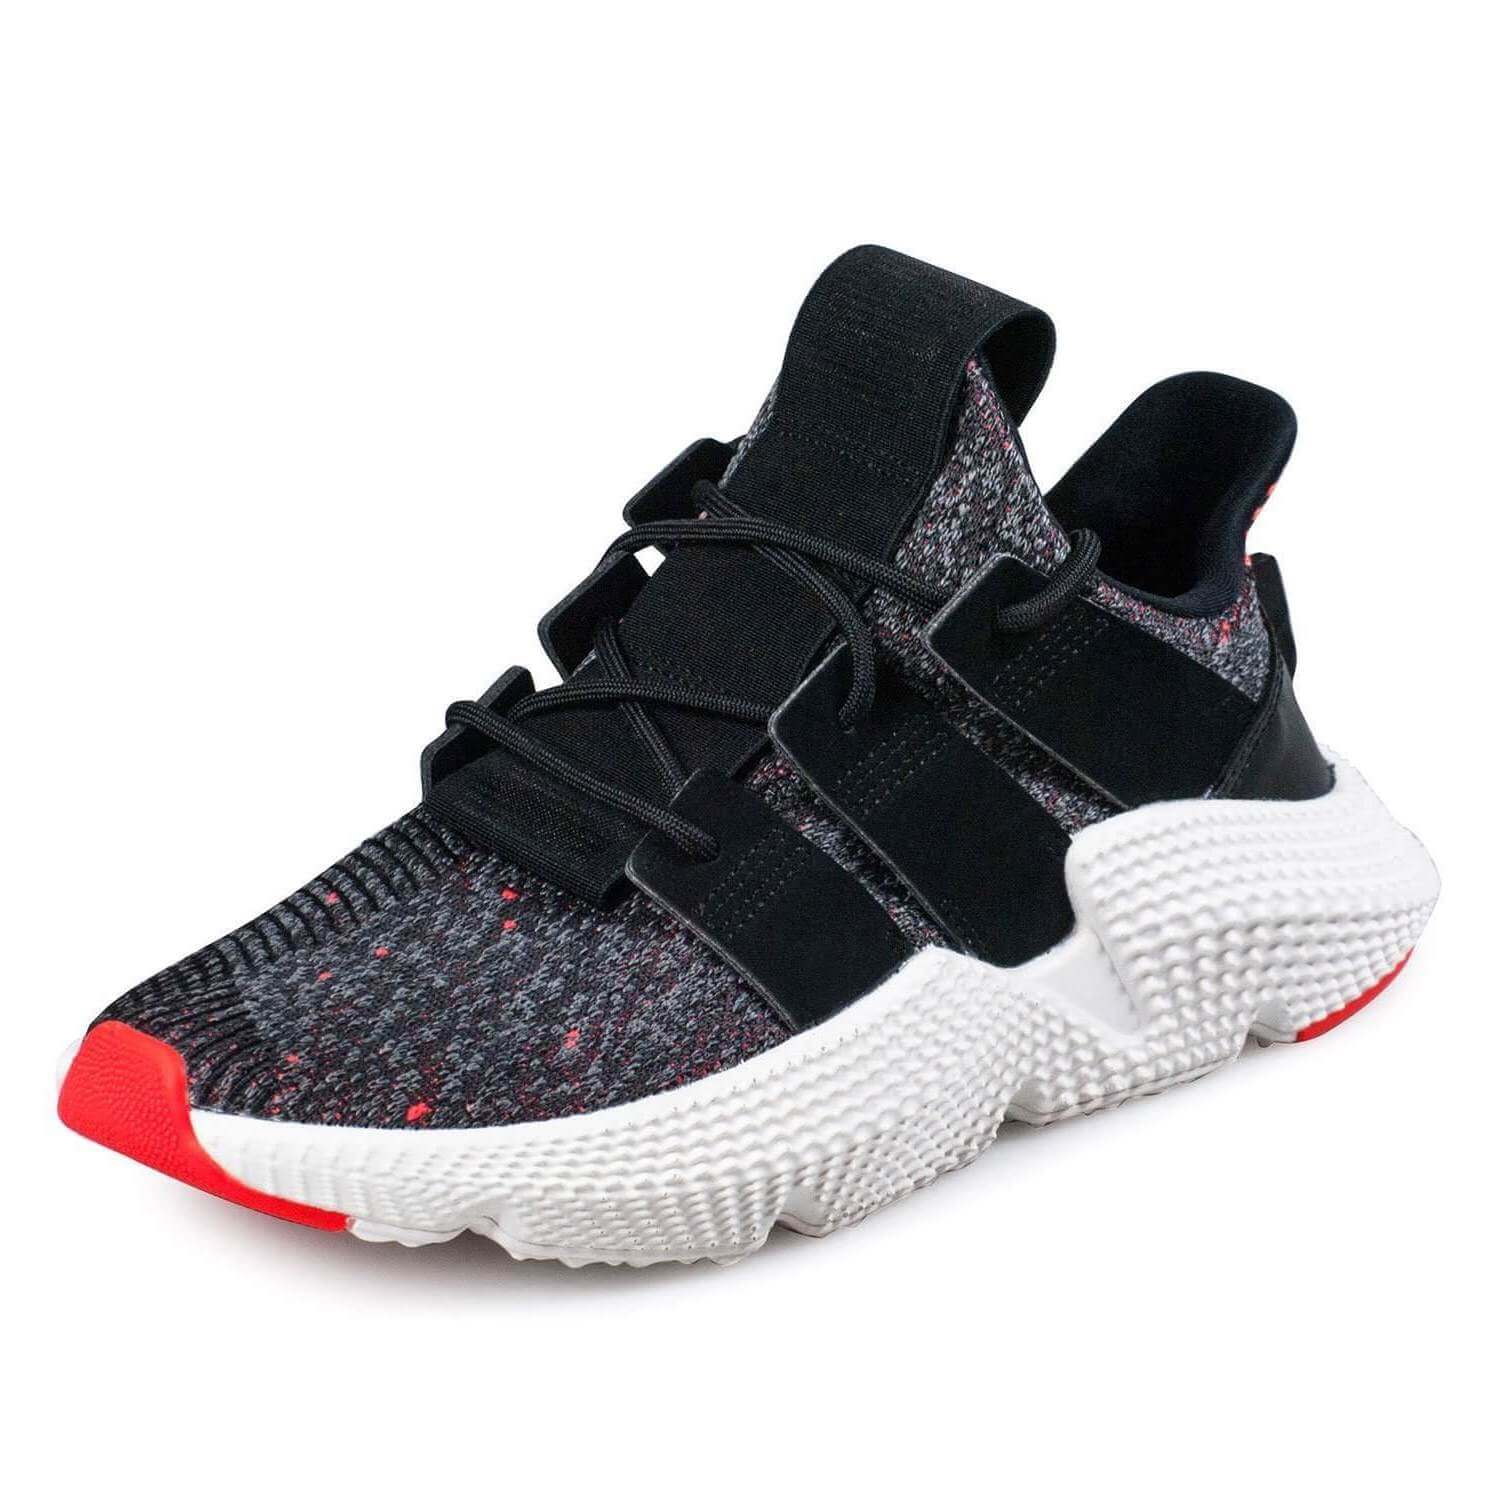 0304db2ed Adidas Prophere Fullyed and Compared - in May 2019